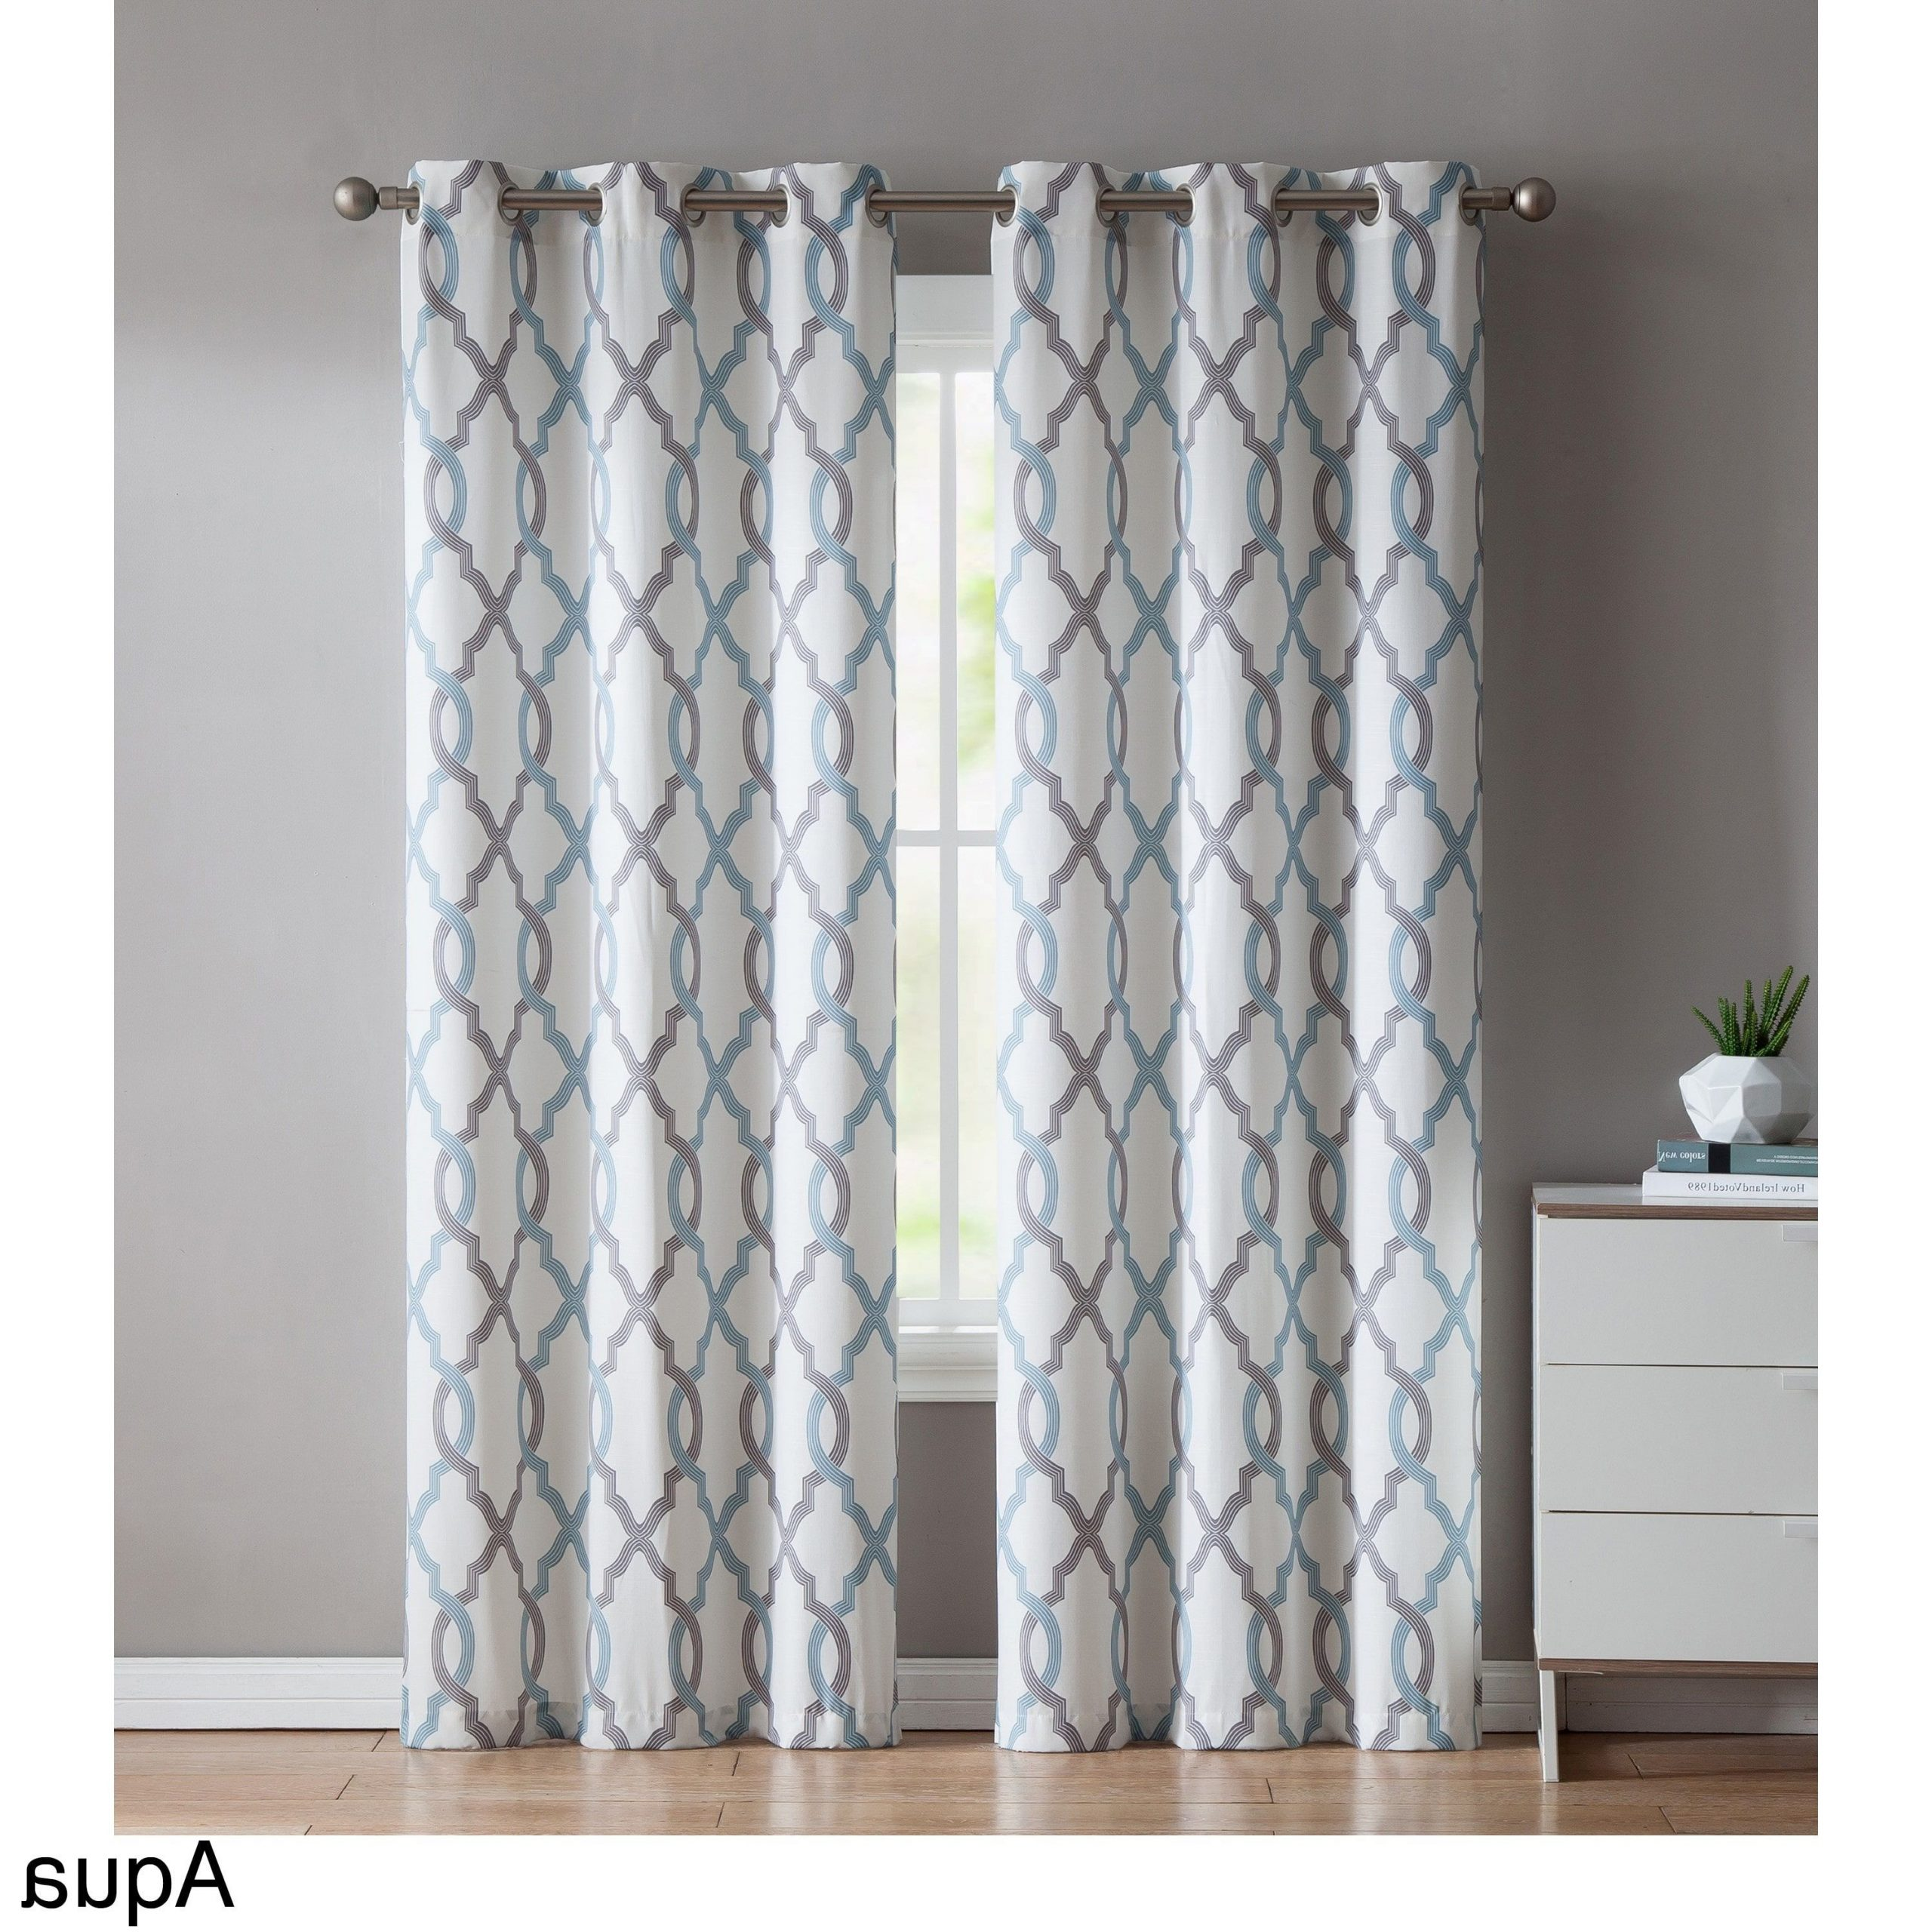 Vcny Home Caldwell Printed Curtain Panel Pair (aqua (blue Pertaining To Best And Newest Essentials Almaden Fretwork Printed Grommet Top Curtain Panel Pairs (View 20 of 20)